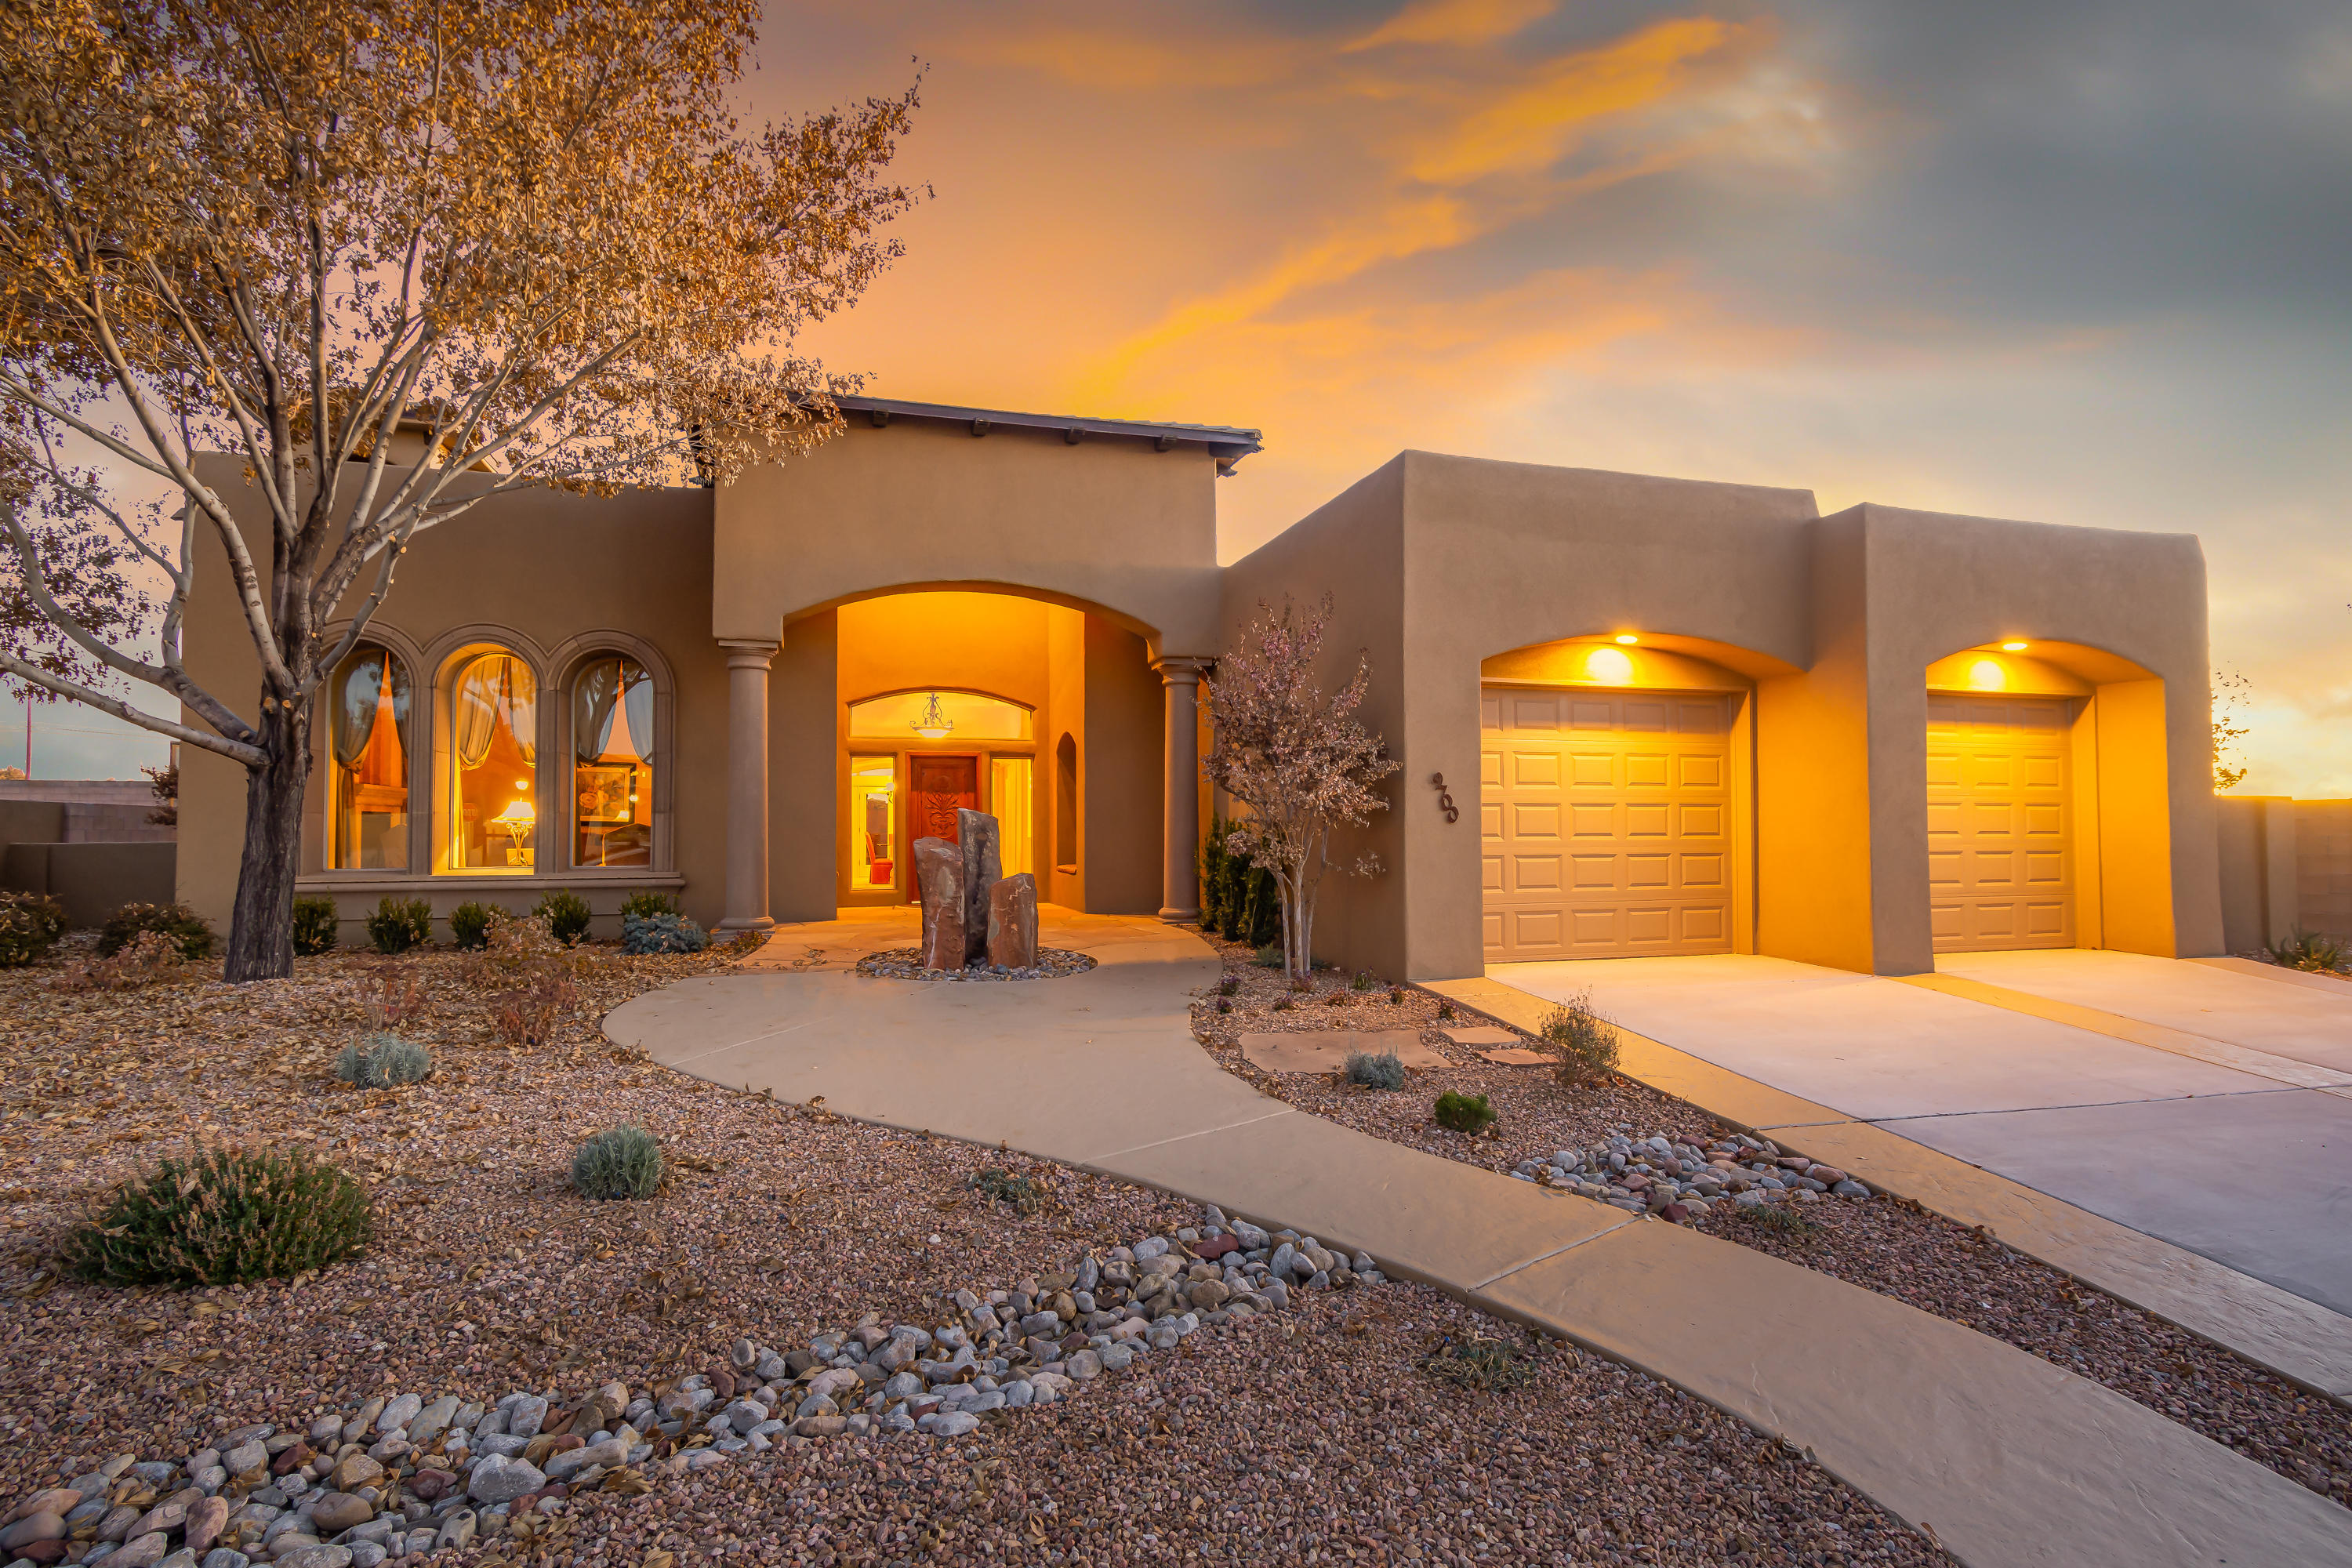 Luxurious Panorama model home located in the prestigious gated Octillo  community on a large .25 acre property. Home features the finest finishes with a classic design. Grand entry with a stunning skylight and custom tile work. Gourmet kitchen with designer cabinetry, granite countertop, built-in ovens/microwave, custom range hood, backsplash, center island  with seating space, a beautiful skylight and a breakfast nook with stunning mountain views! Enchanted living area with a stone wall, gas fireplace and built-ins. Romantic master suite with a 2-sided fireplace and a spa-like bath. Bath host dual sinks with a custom vanity, jetted bath accented with roman columns, walk-in shower & closet. Great outdoor living space with w/ a huge covered patio that flows to an open patio w/ a fireplace.